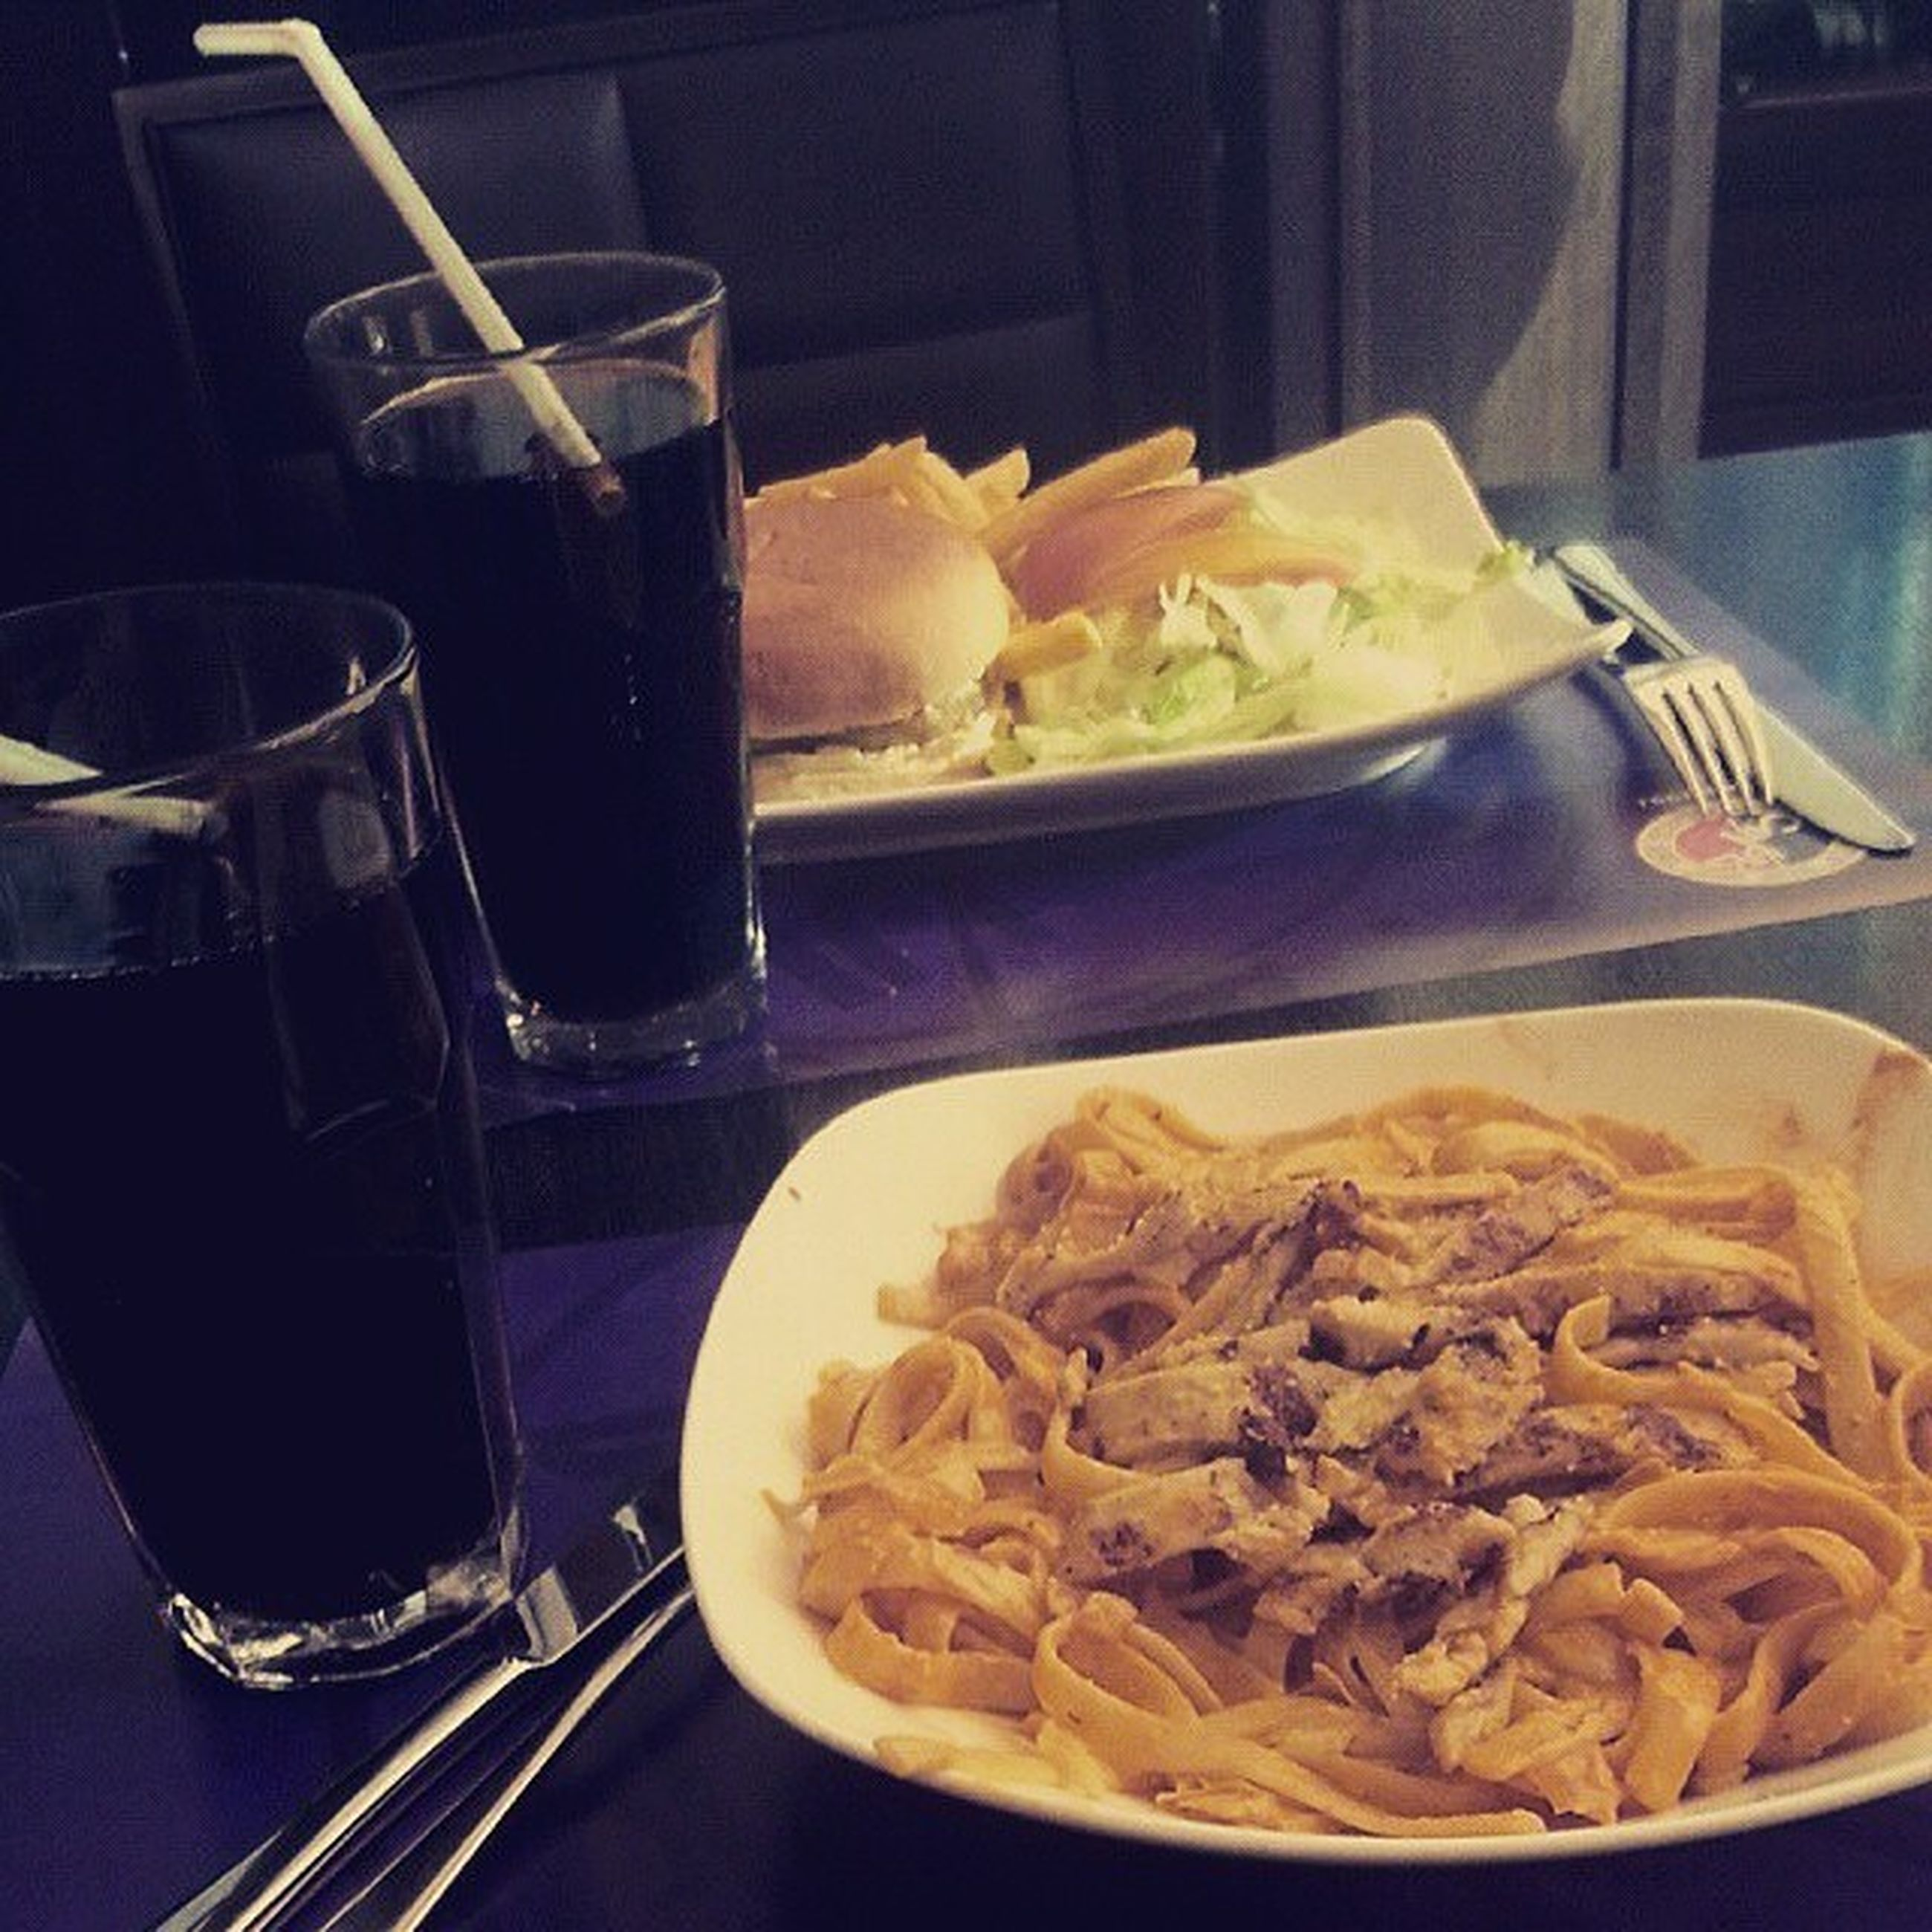 food and drink, indoors, food, freshness, ready-to-eat, table, plate, still life, healthy eating, meal, bowl, fork, serving size, close-up, restaurant, spoon, indulgence, chopsticks, drinking glass, noodles